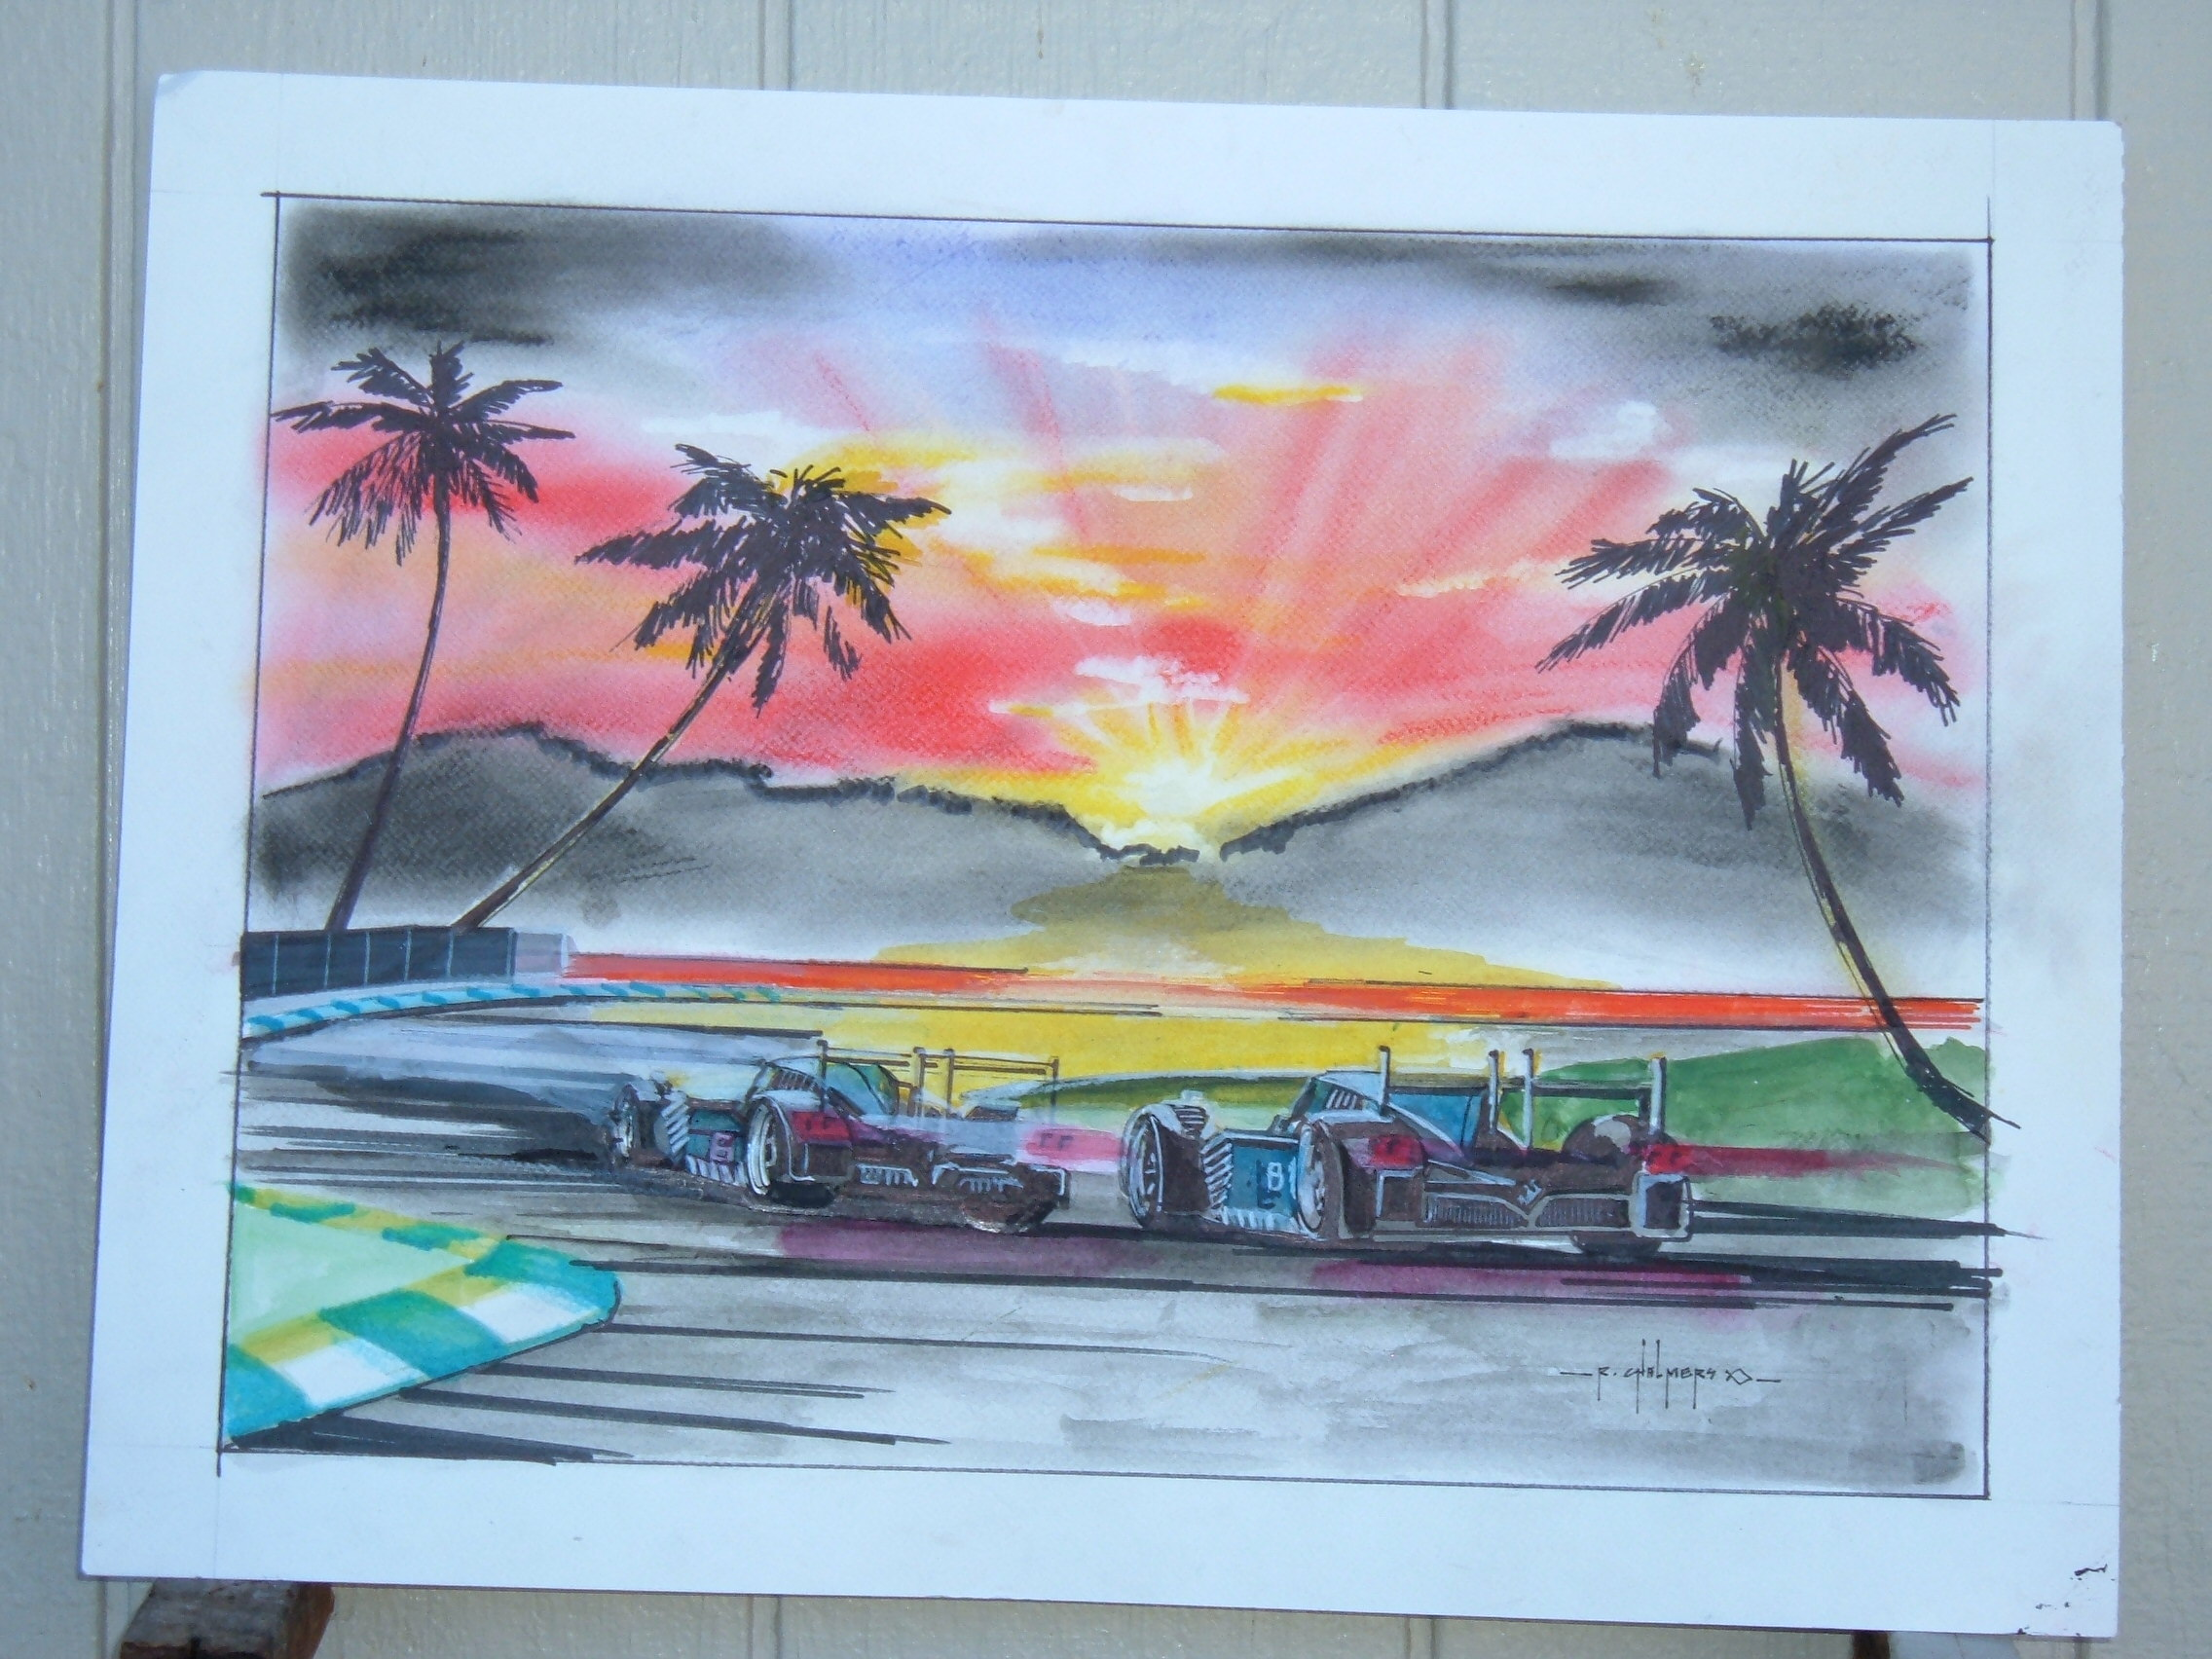 Click image for larger version  Name:Ron's Art 004.jpg Views:174 Size:697.0 KB ID:54126